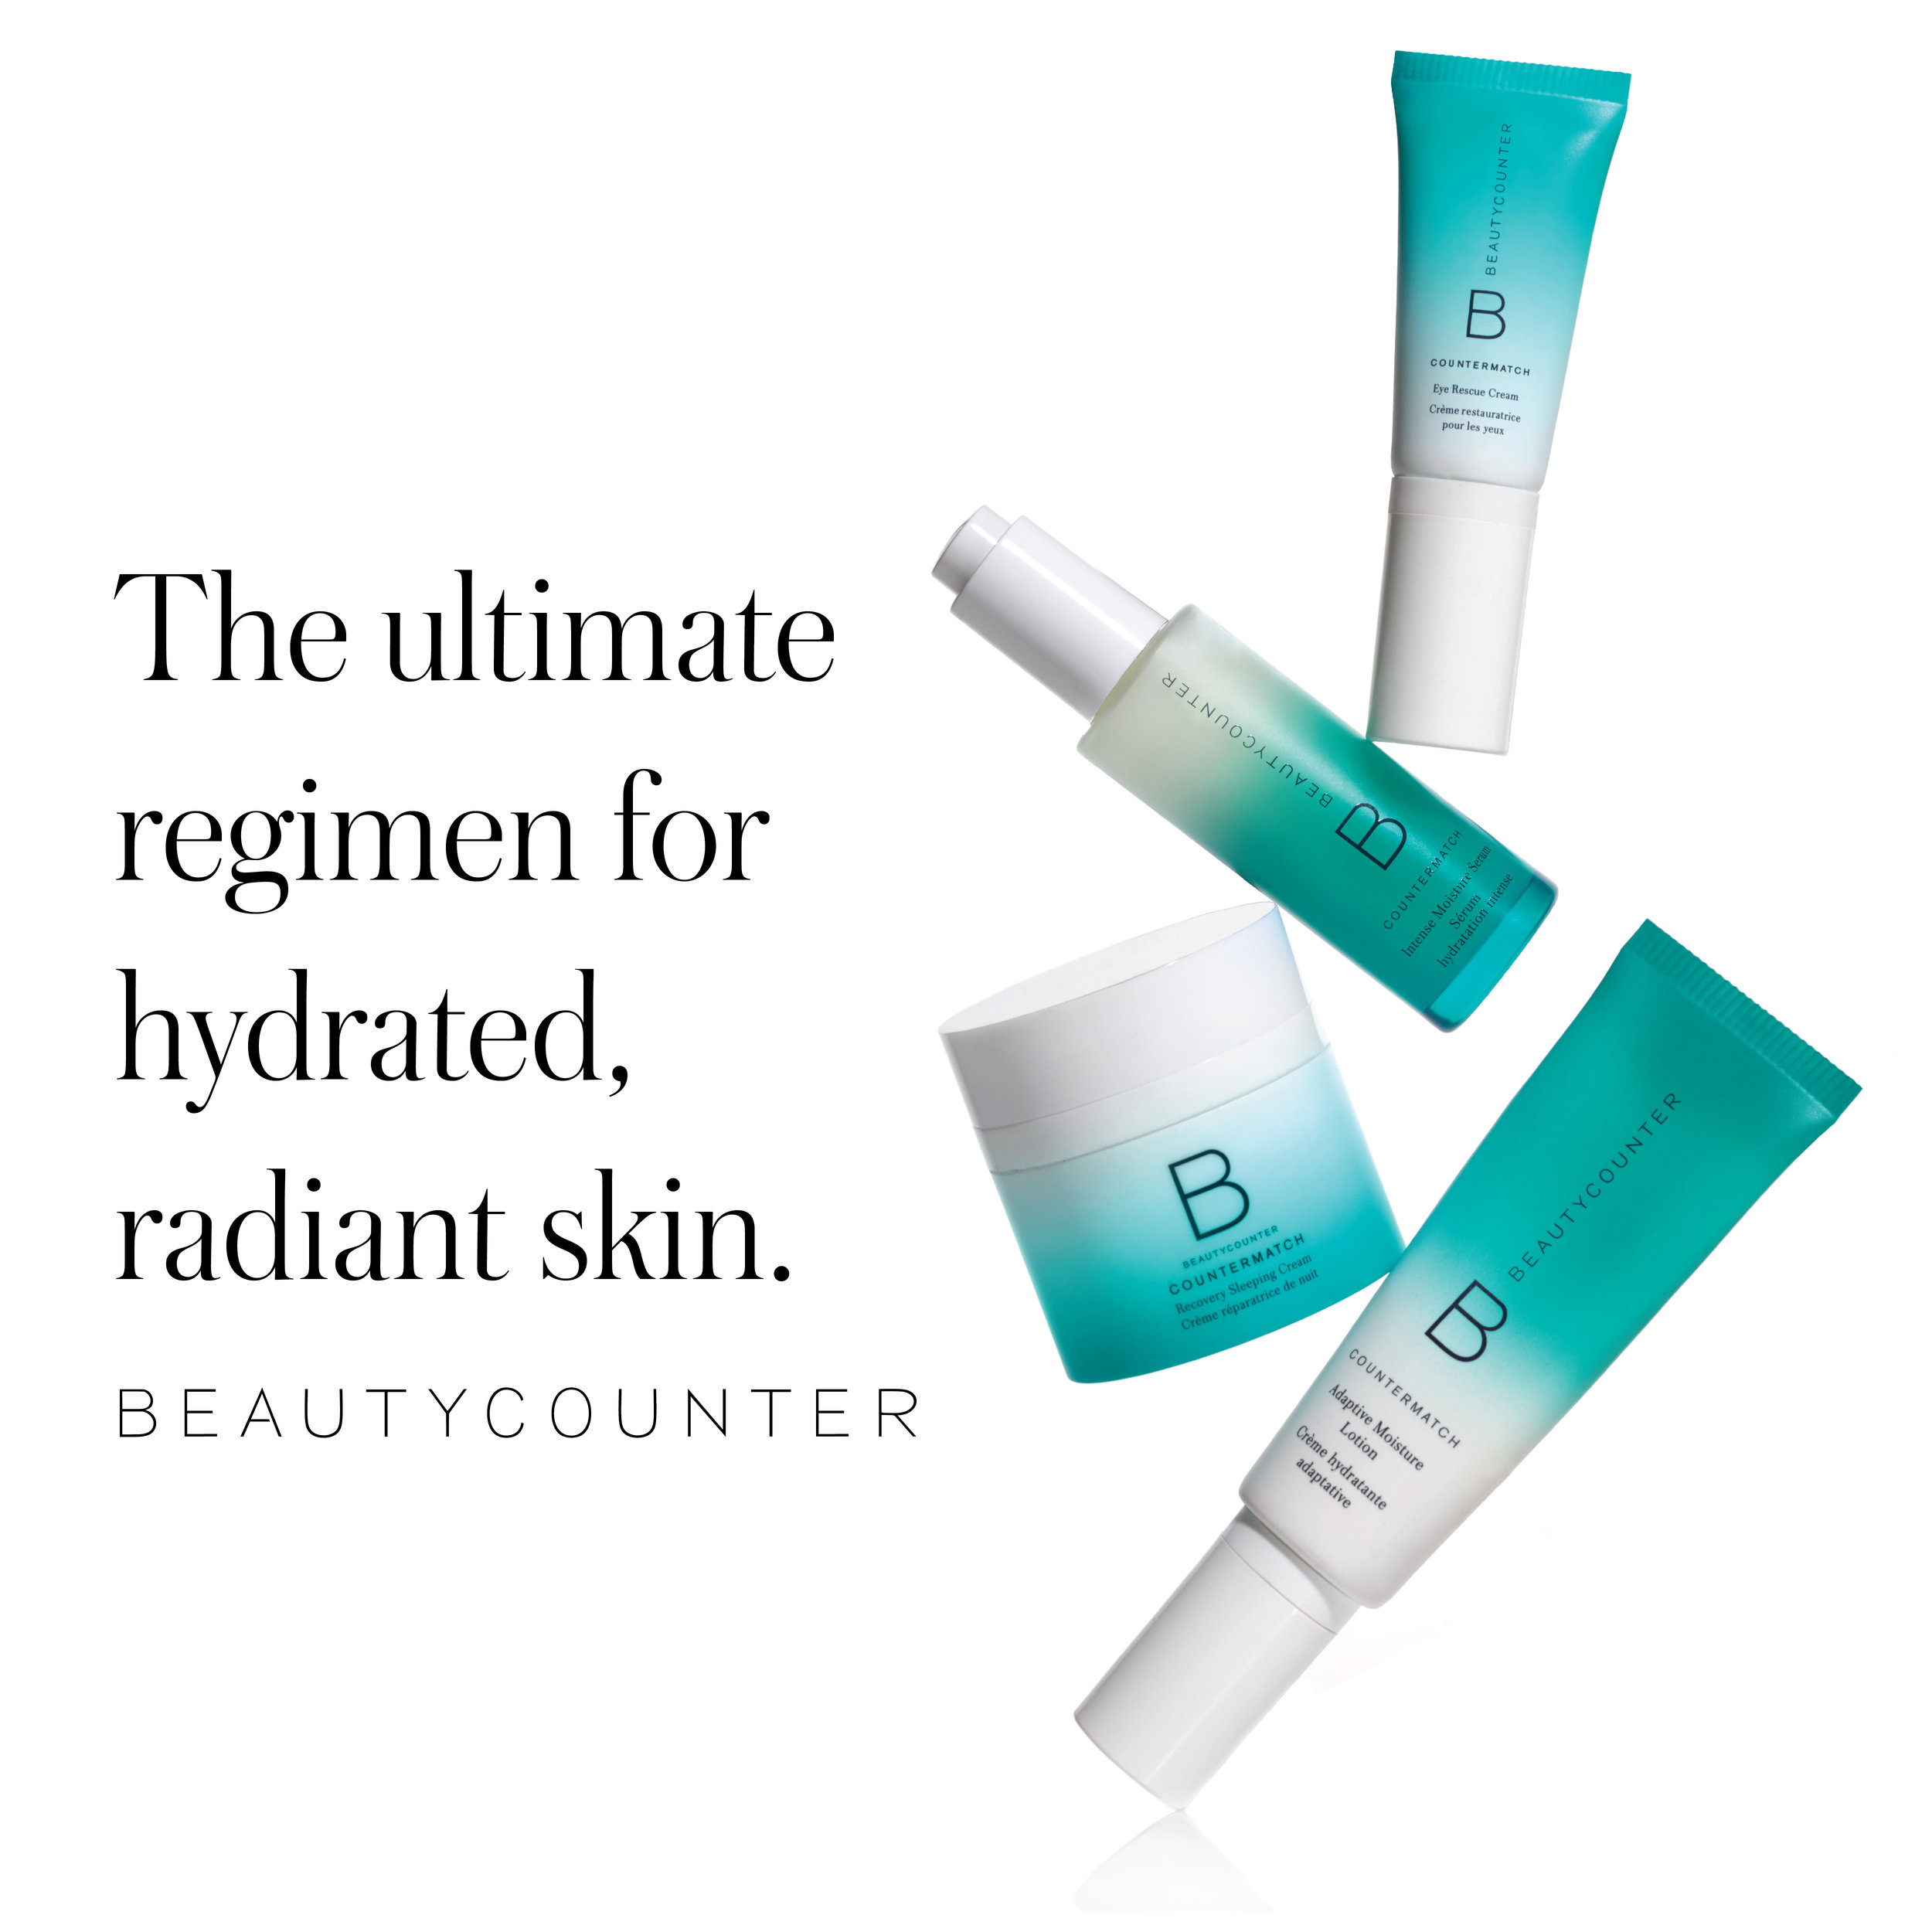 The CounterMatch Collection - One of my favorite collections for performance and price, The Countermatch Collection is the ultimate solution for hydrated, radiant, and youthful-looking skin, thanks to its age-preventing and vibrancy-boosting benefits. Powered by Bio-Mimic Technology, each product harnesses the unique life-giving properties of plants to match the composition of skin, giving it precisely what it needs and nothing it doesn't.